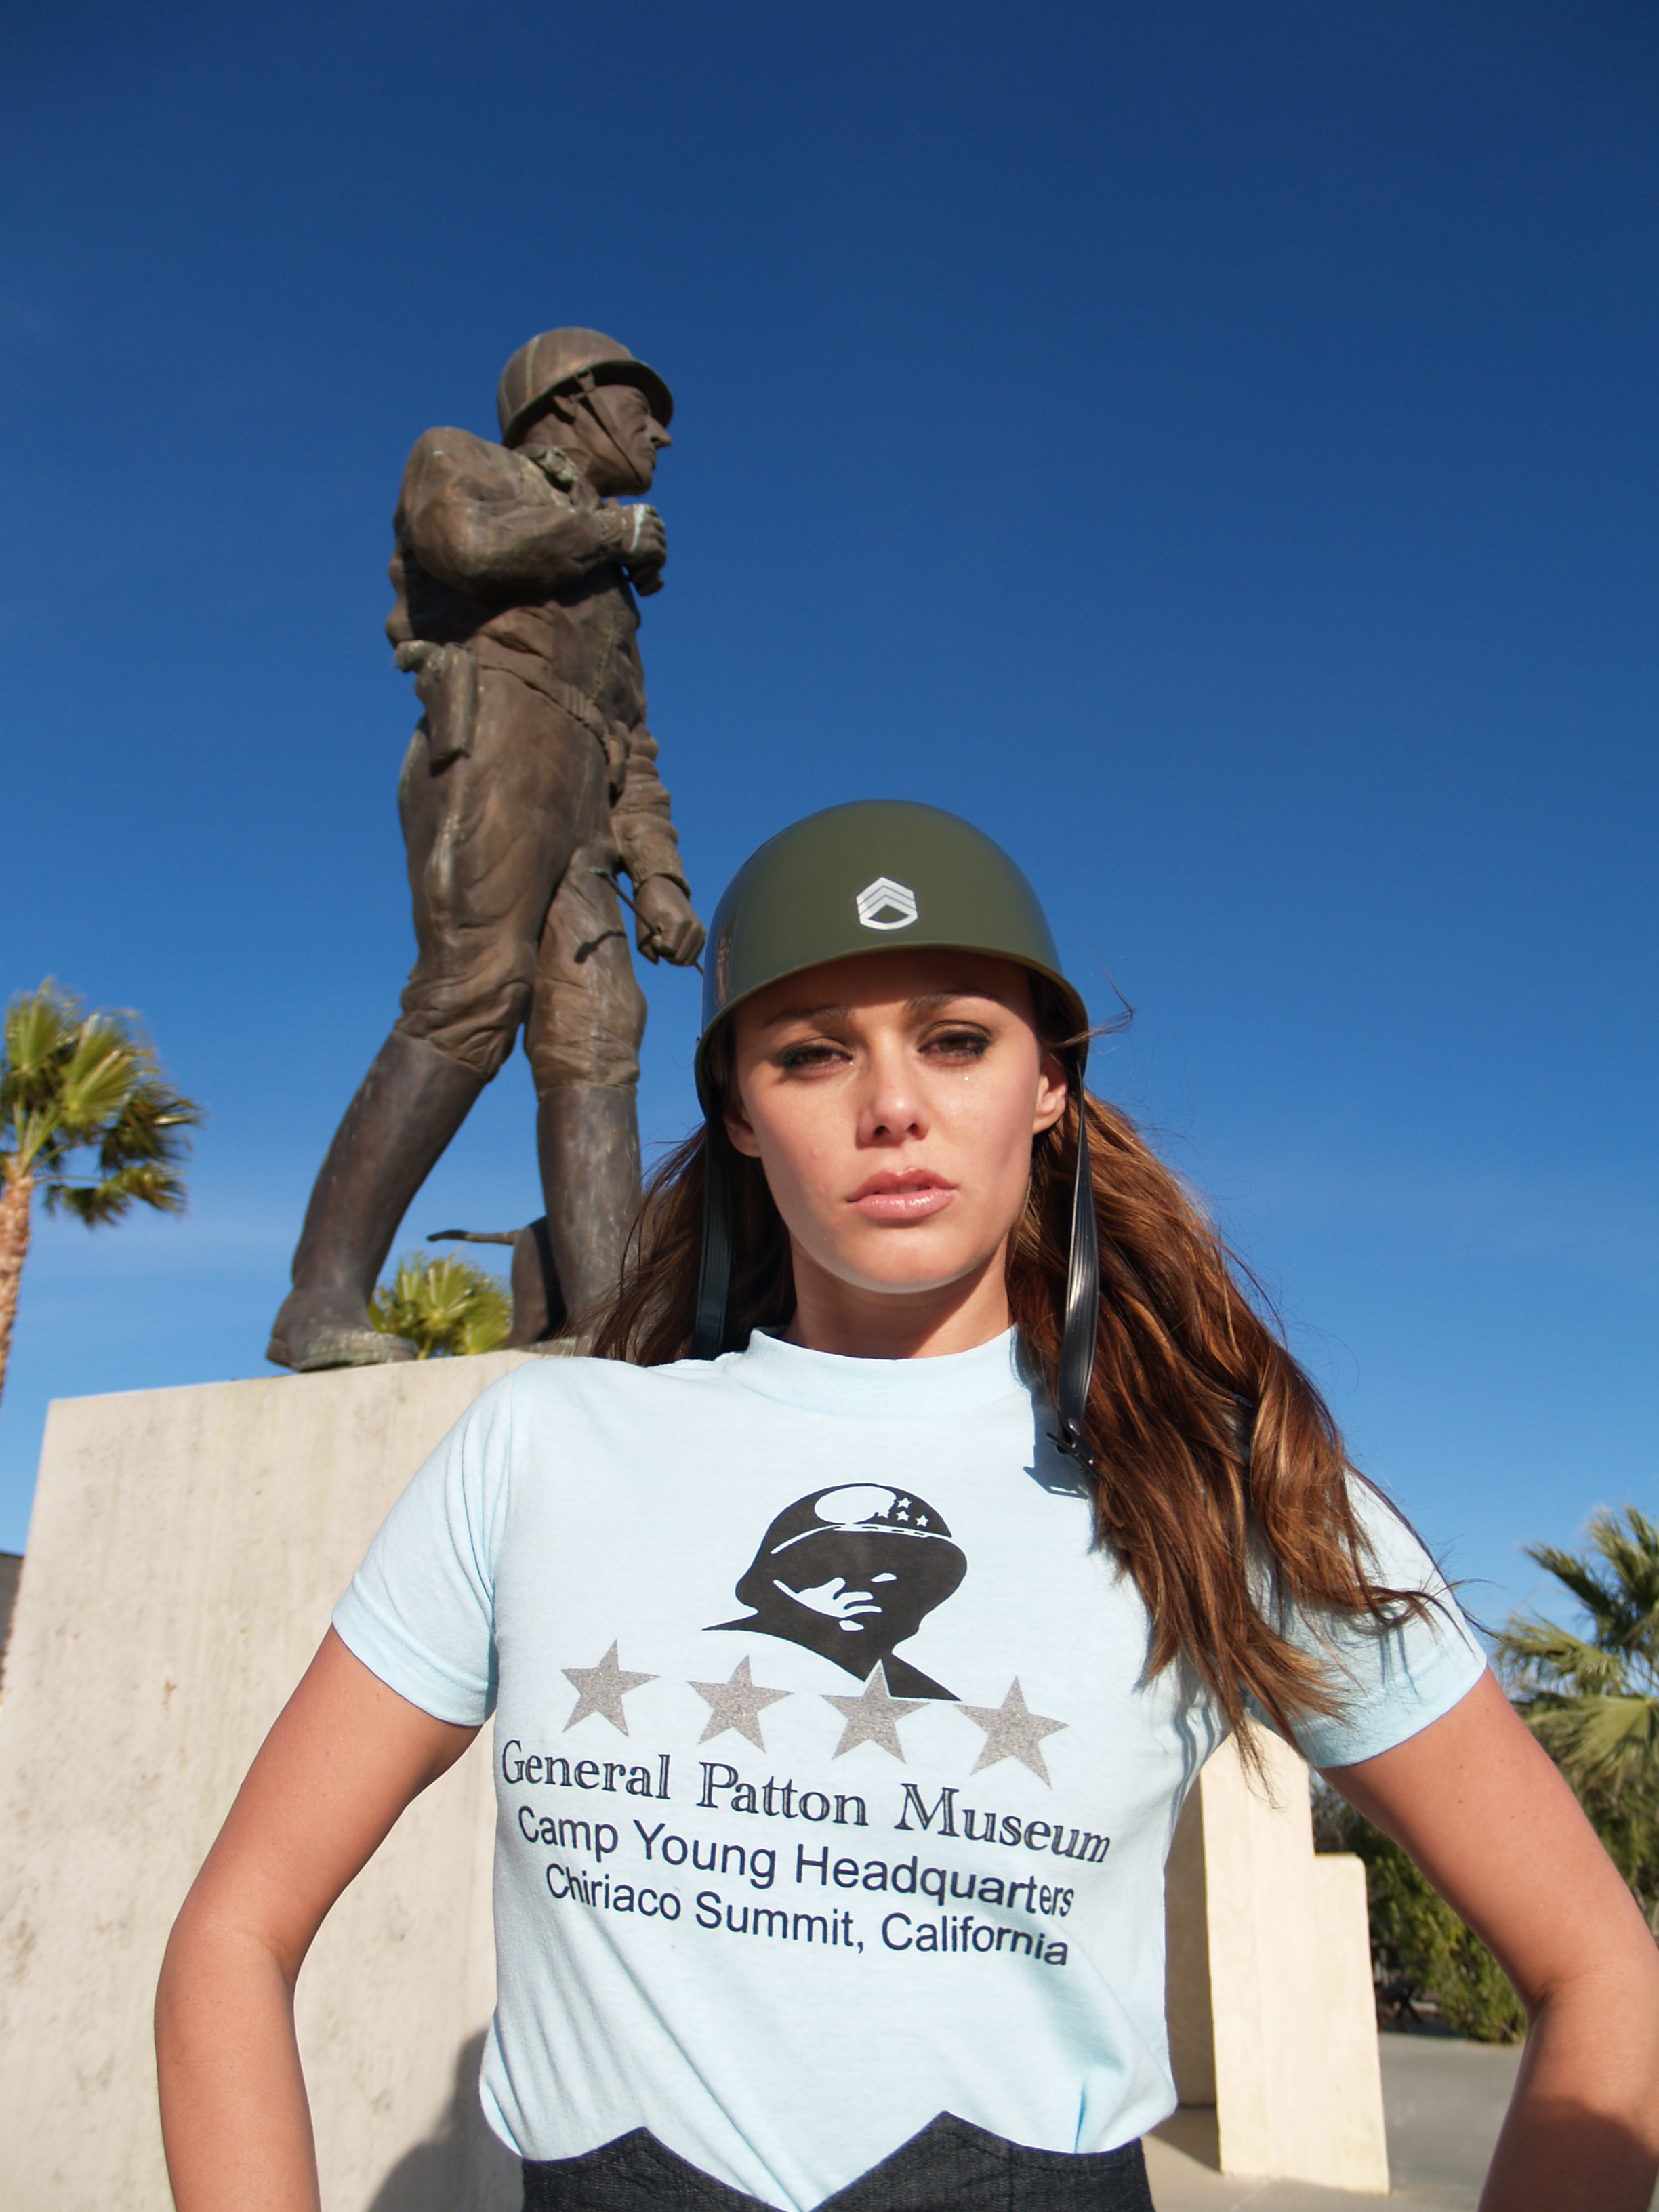 VETERANS DAY, NOV. 7TH, GENERAL PATTON MUSEUM, CHIRIACO SUMMIT, CA